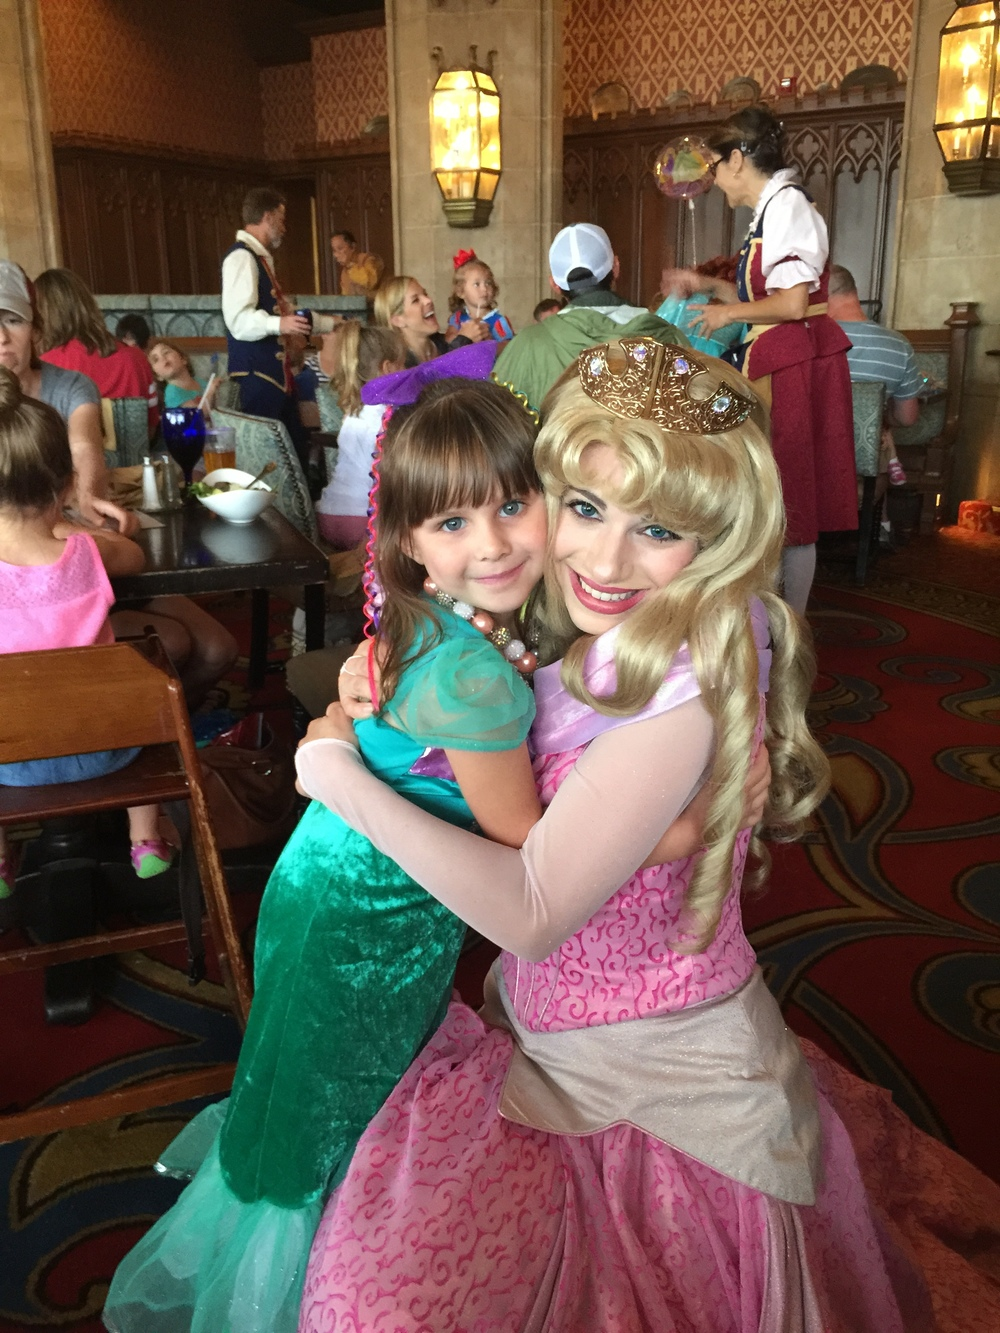 Hugs from Aurora (Sleeping Beauty)